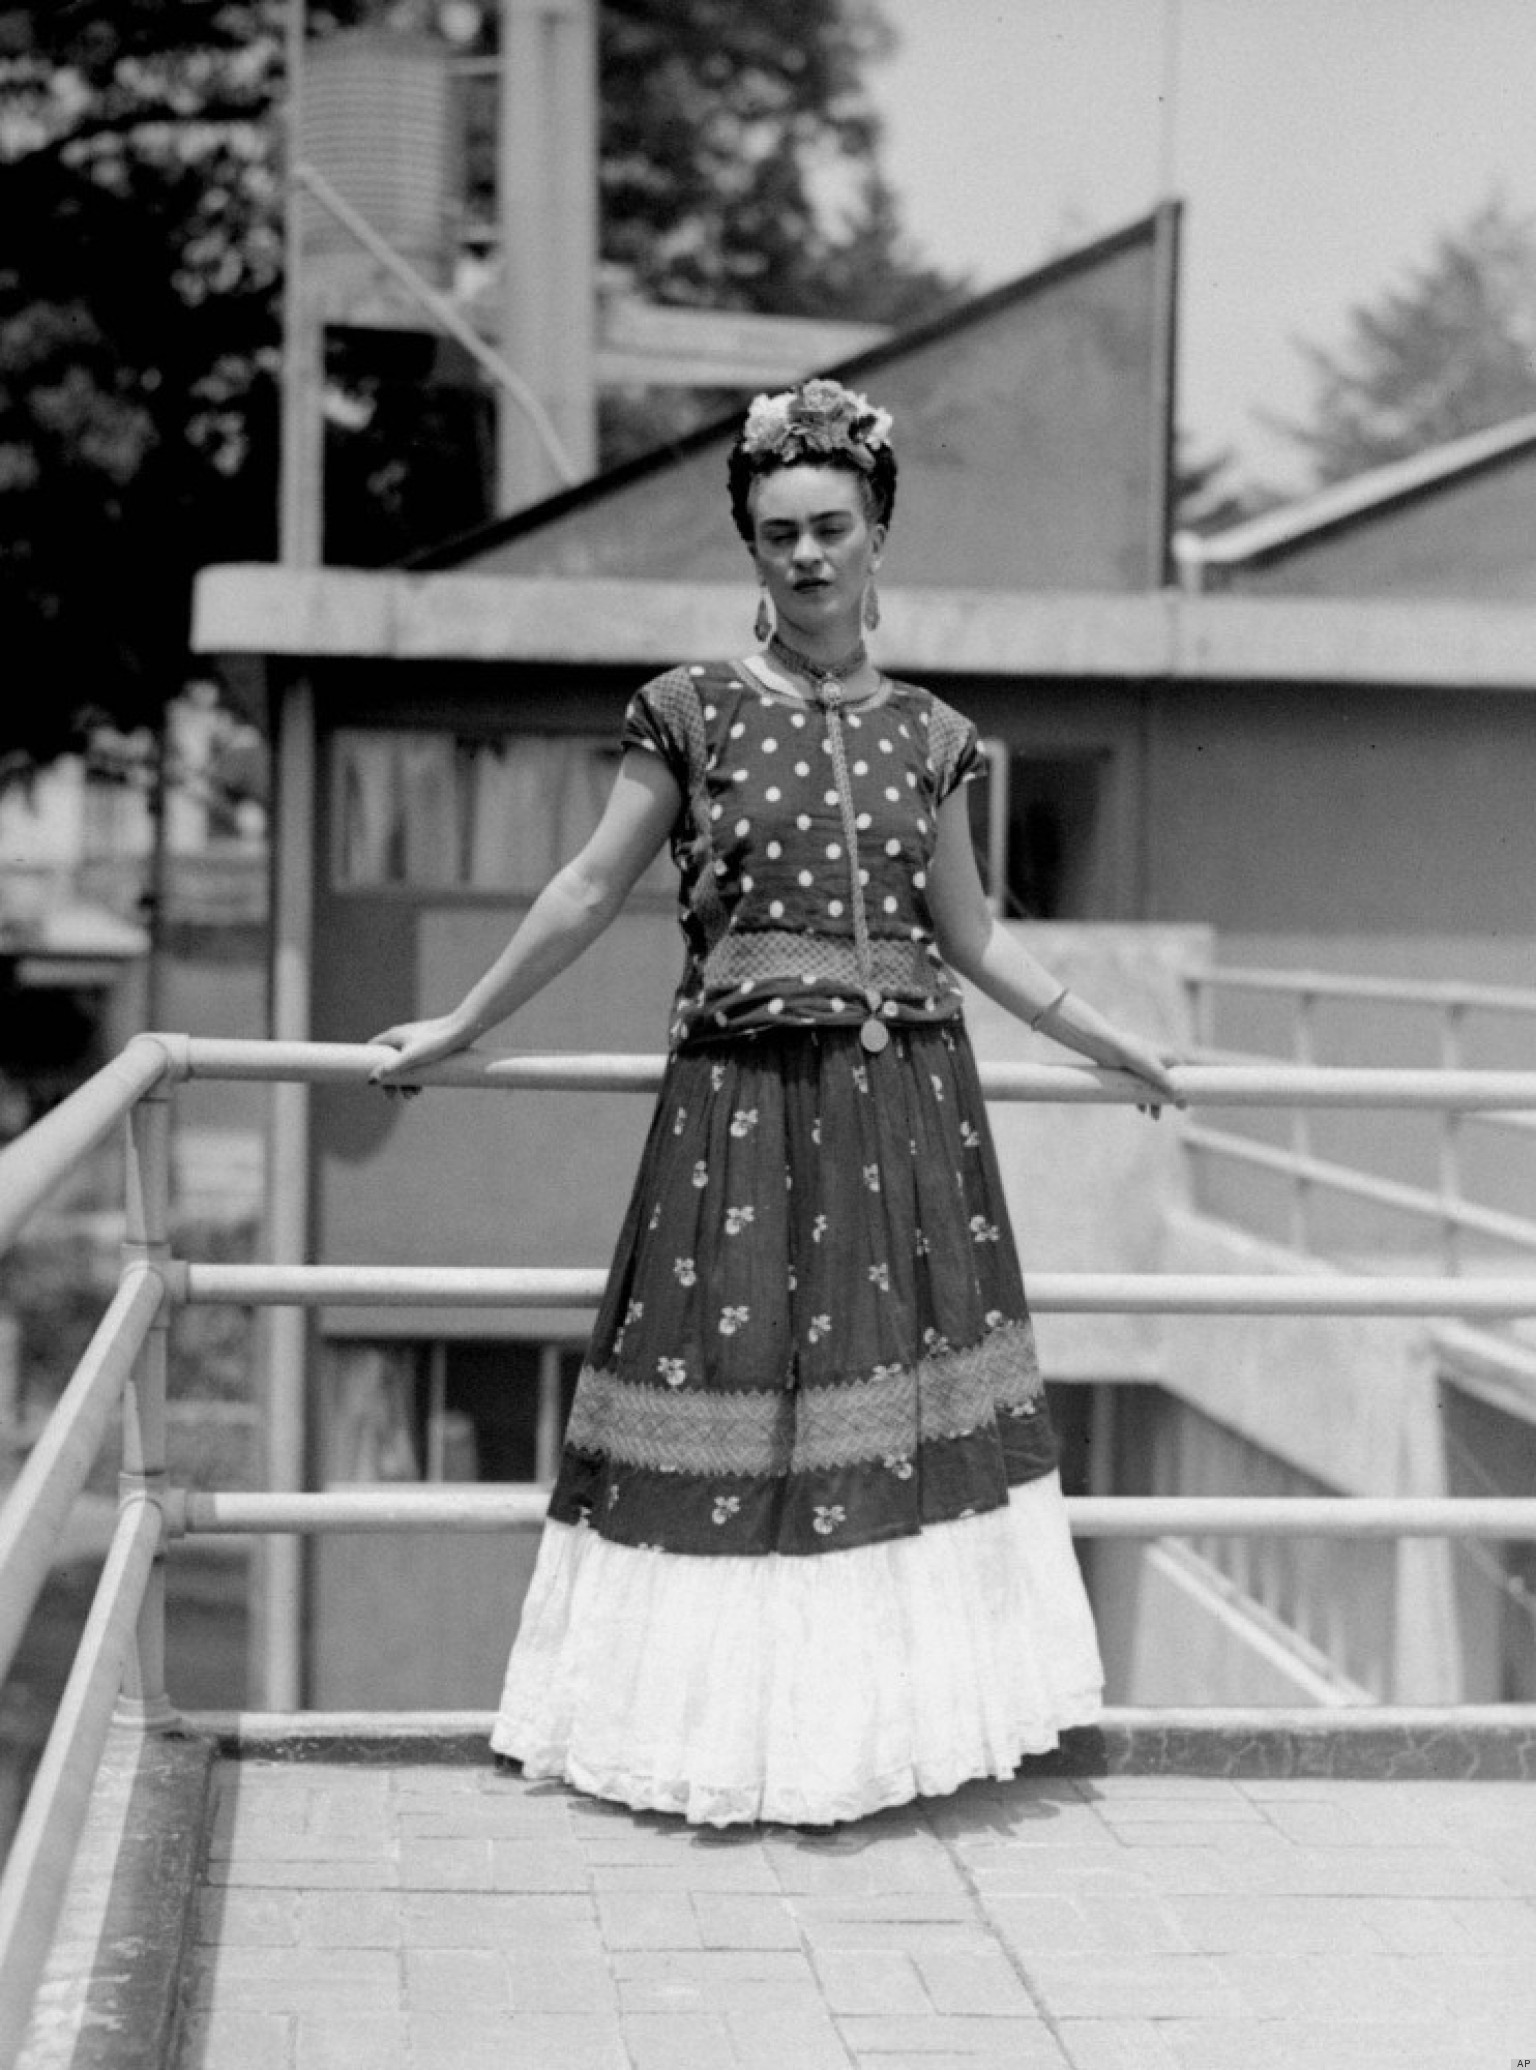 national hispanic heritage month 2012 we pay tribute to frida kahlo 39 s iconic style photos. Black Bedroom Furniture Sets. Home Design Ideas